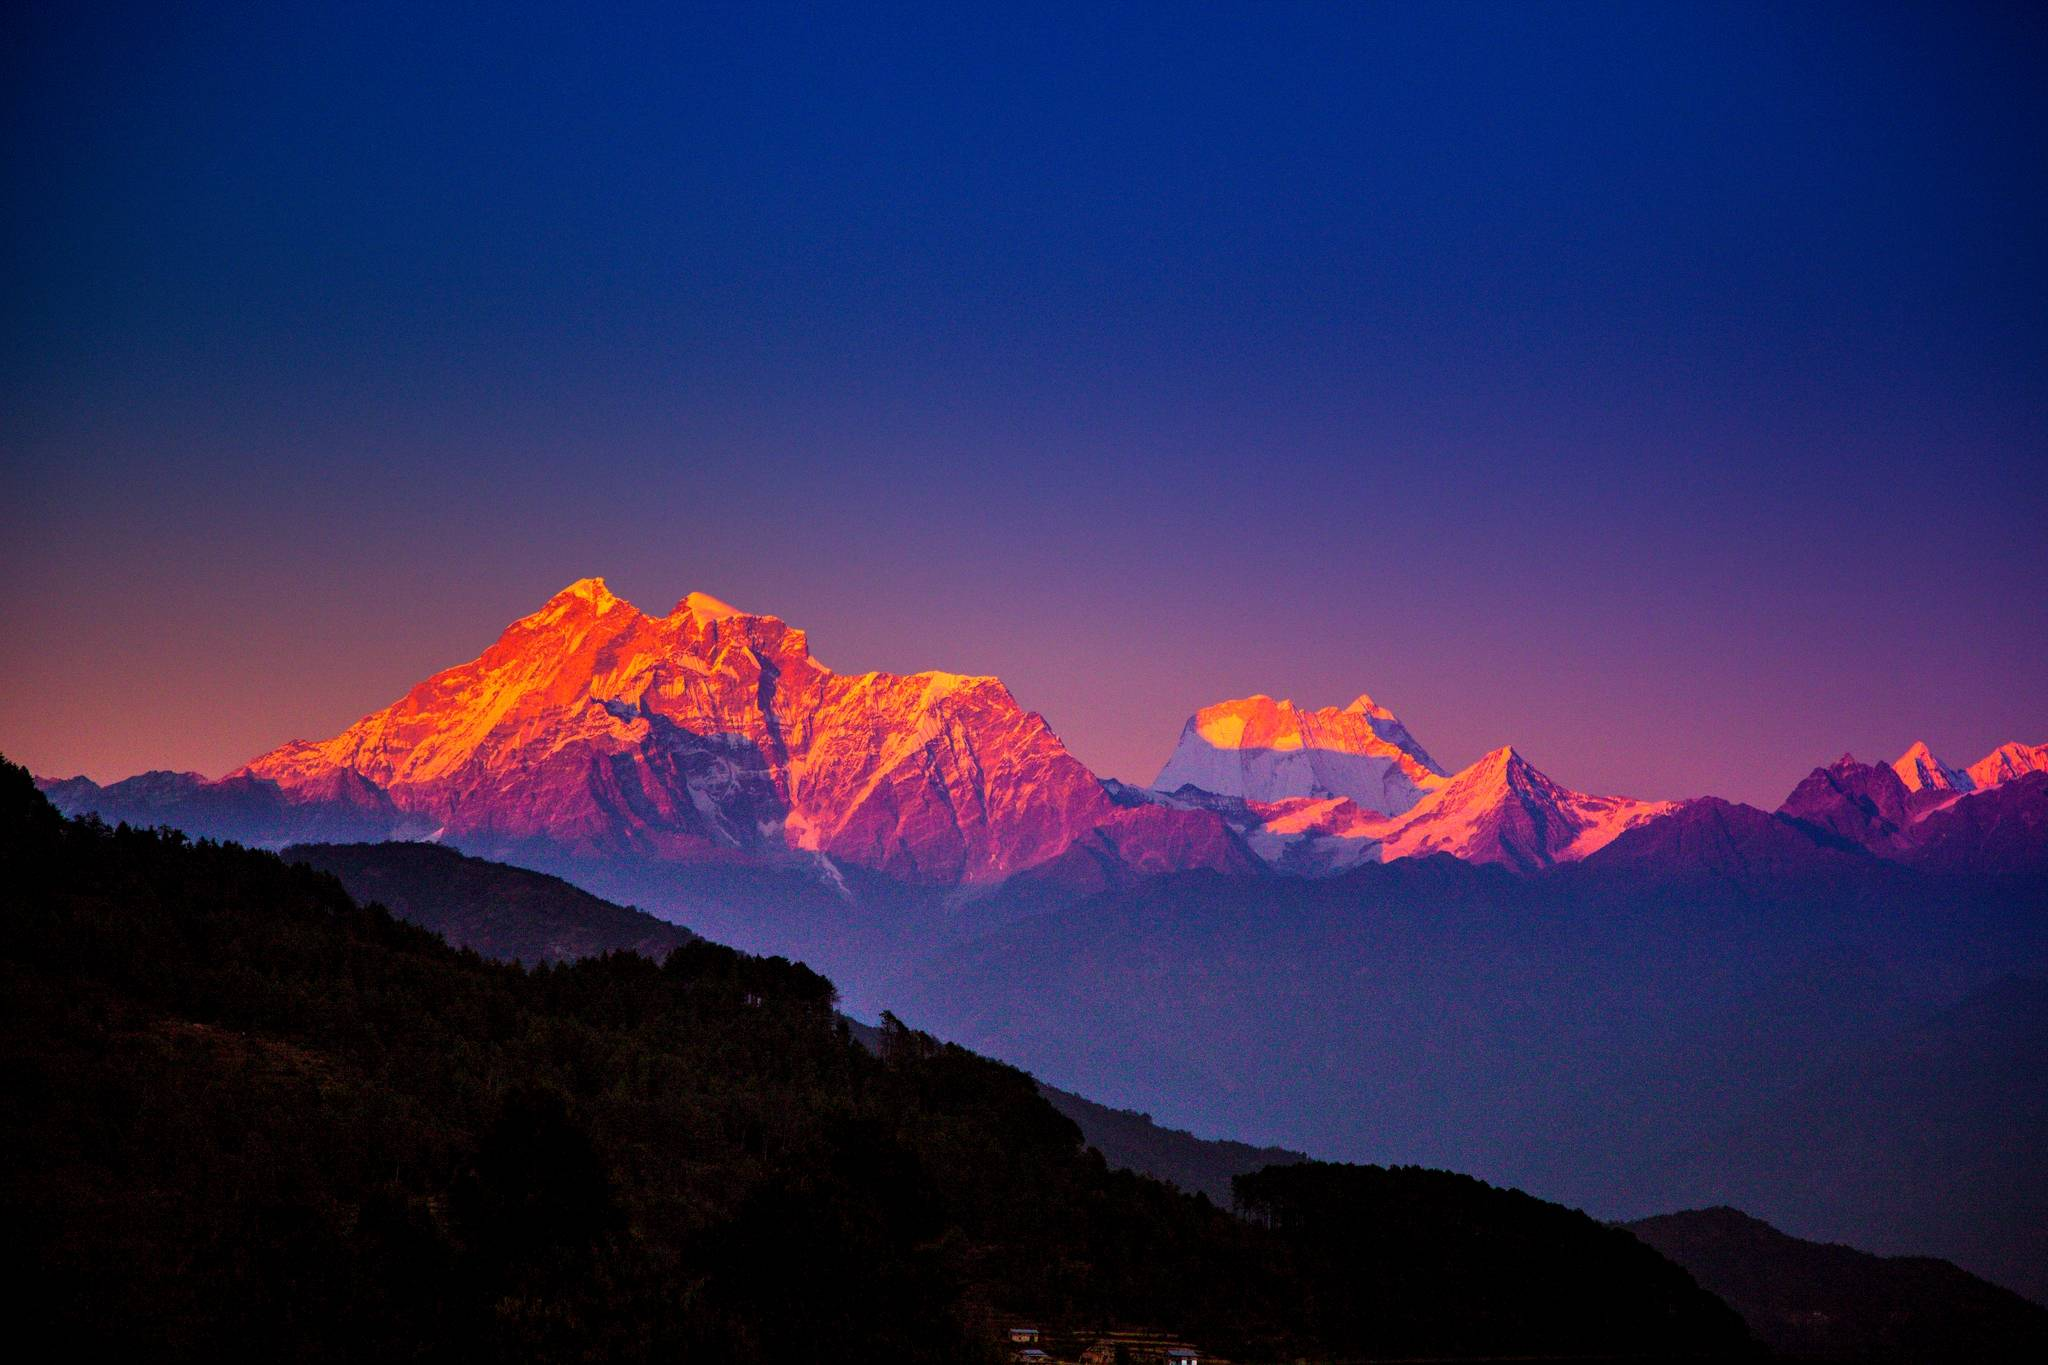 himalaya mountains hd wallpaper - photo #15